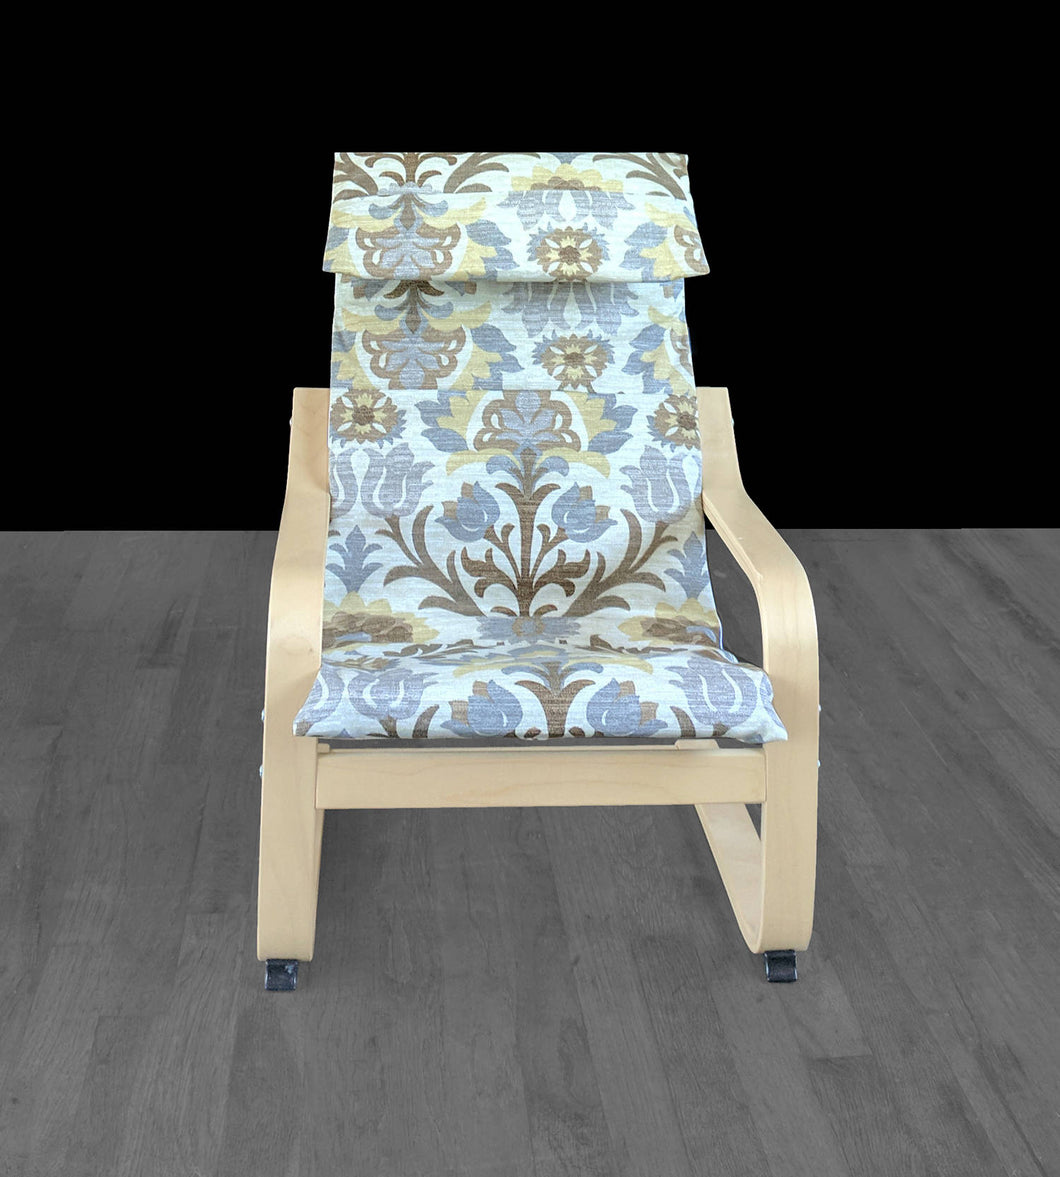 Earthy Floral Ikea Poang Chair Cover, Ikea Kids Poang Seat Cover, Santa Maria Moonstone